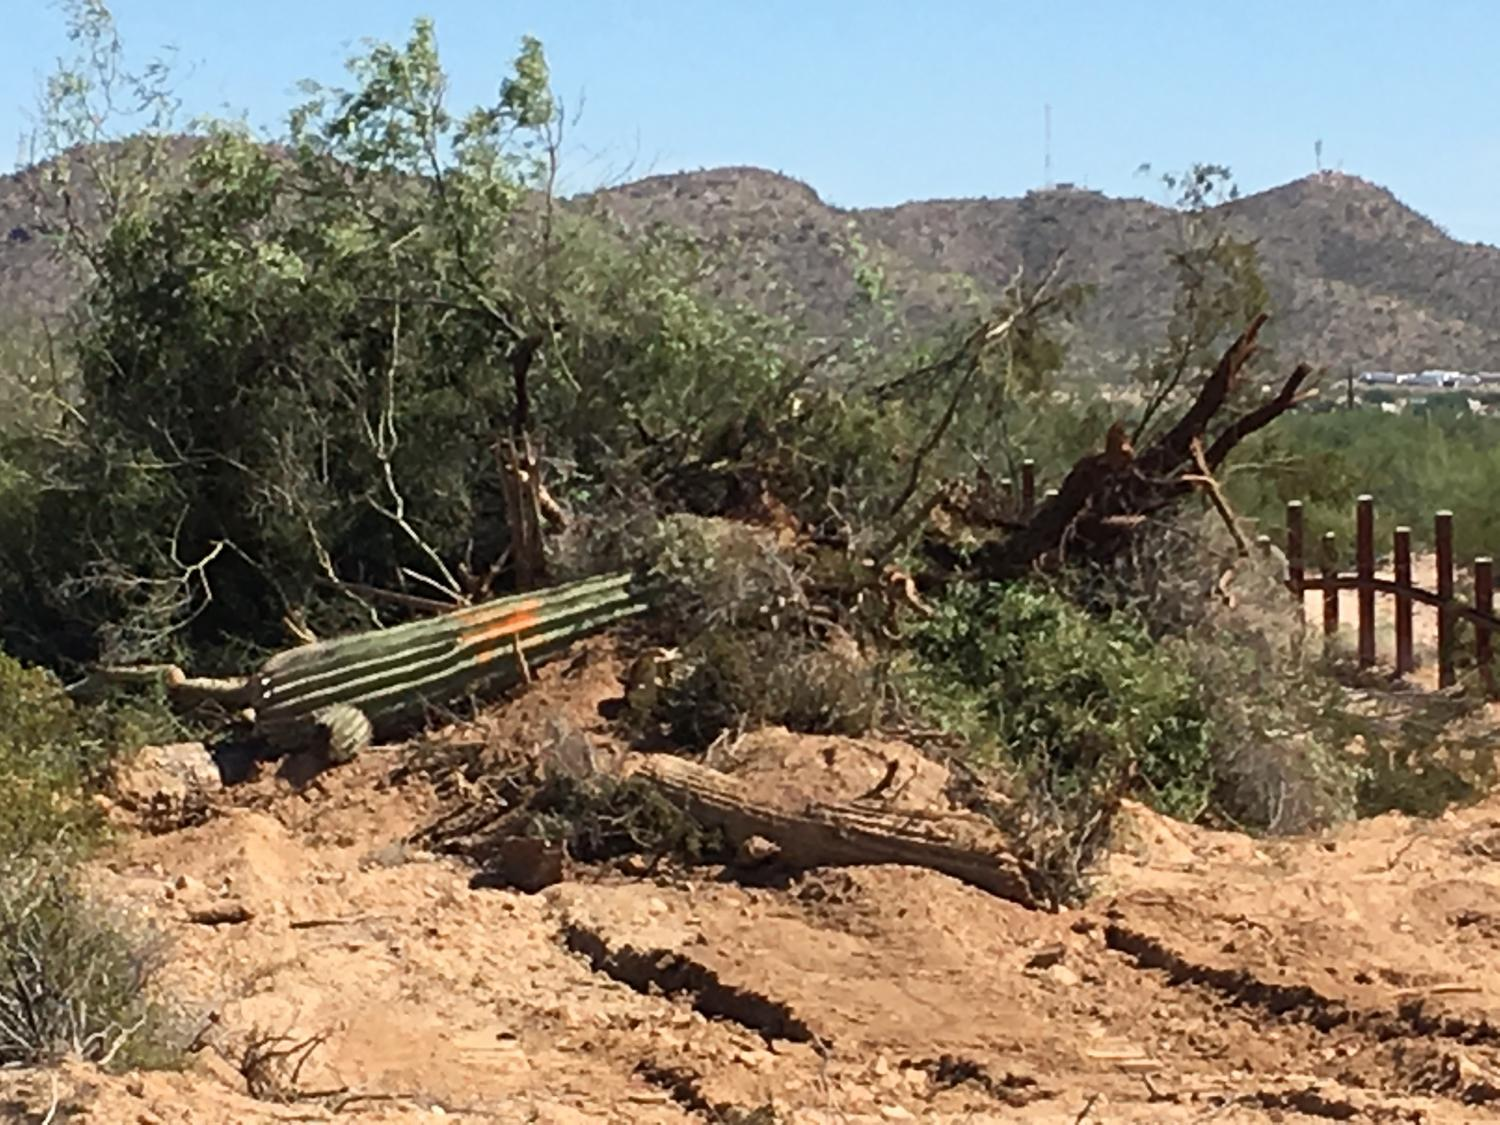 Saguaro cactus bulldozed to build border wall